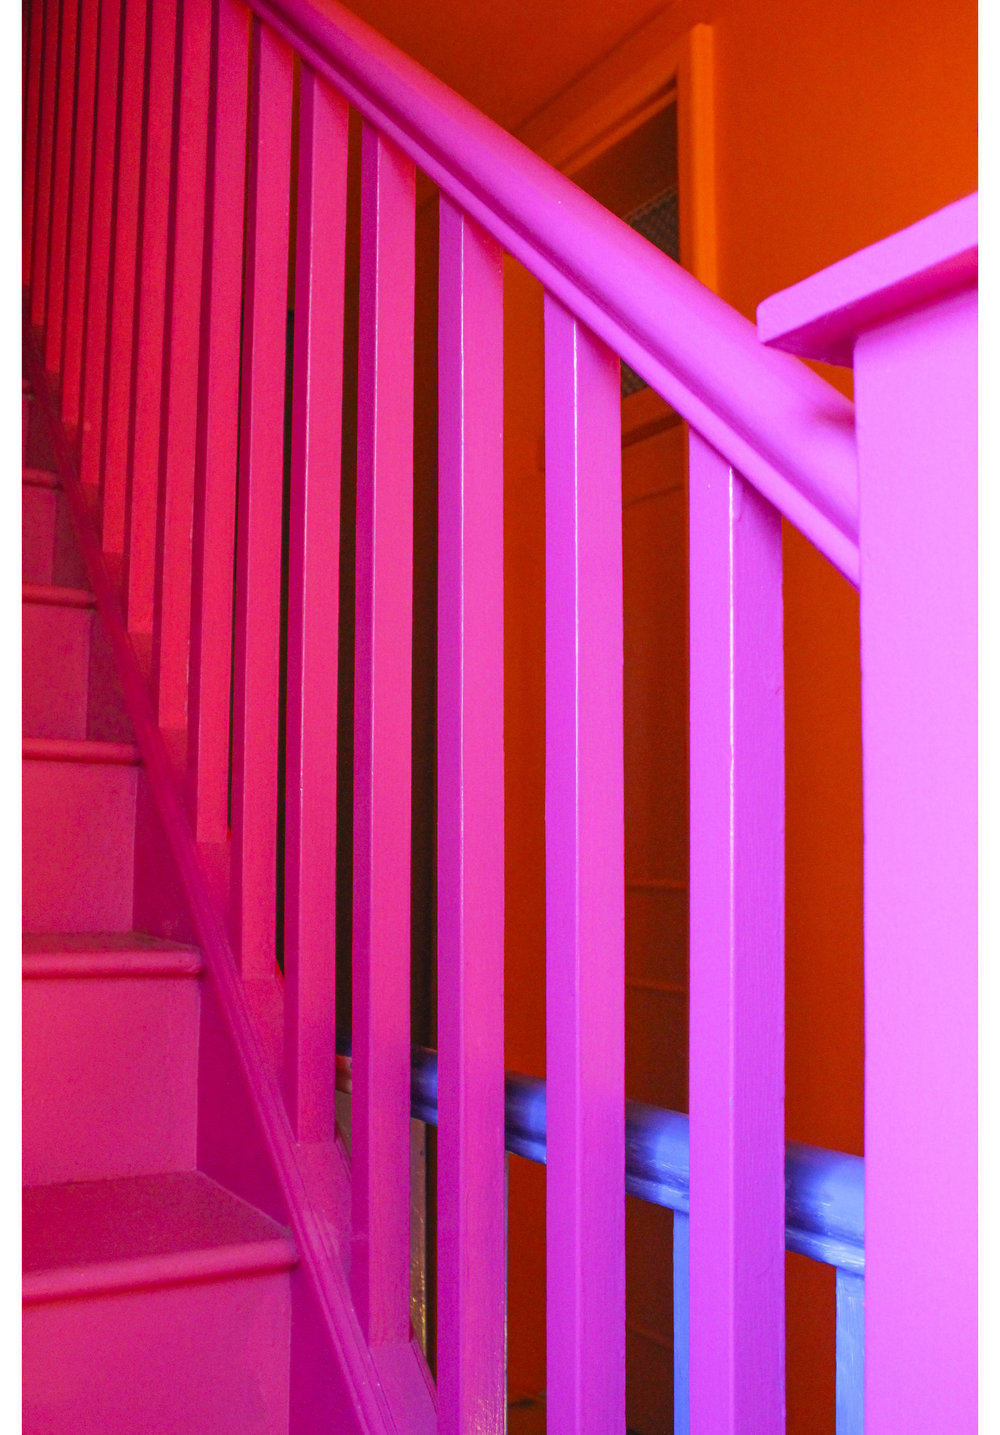 MLH Pink Orange Blue Bannisters.jpg